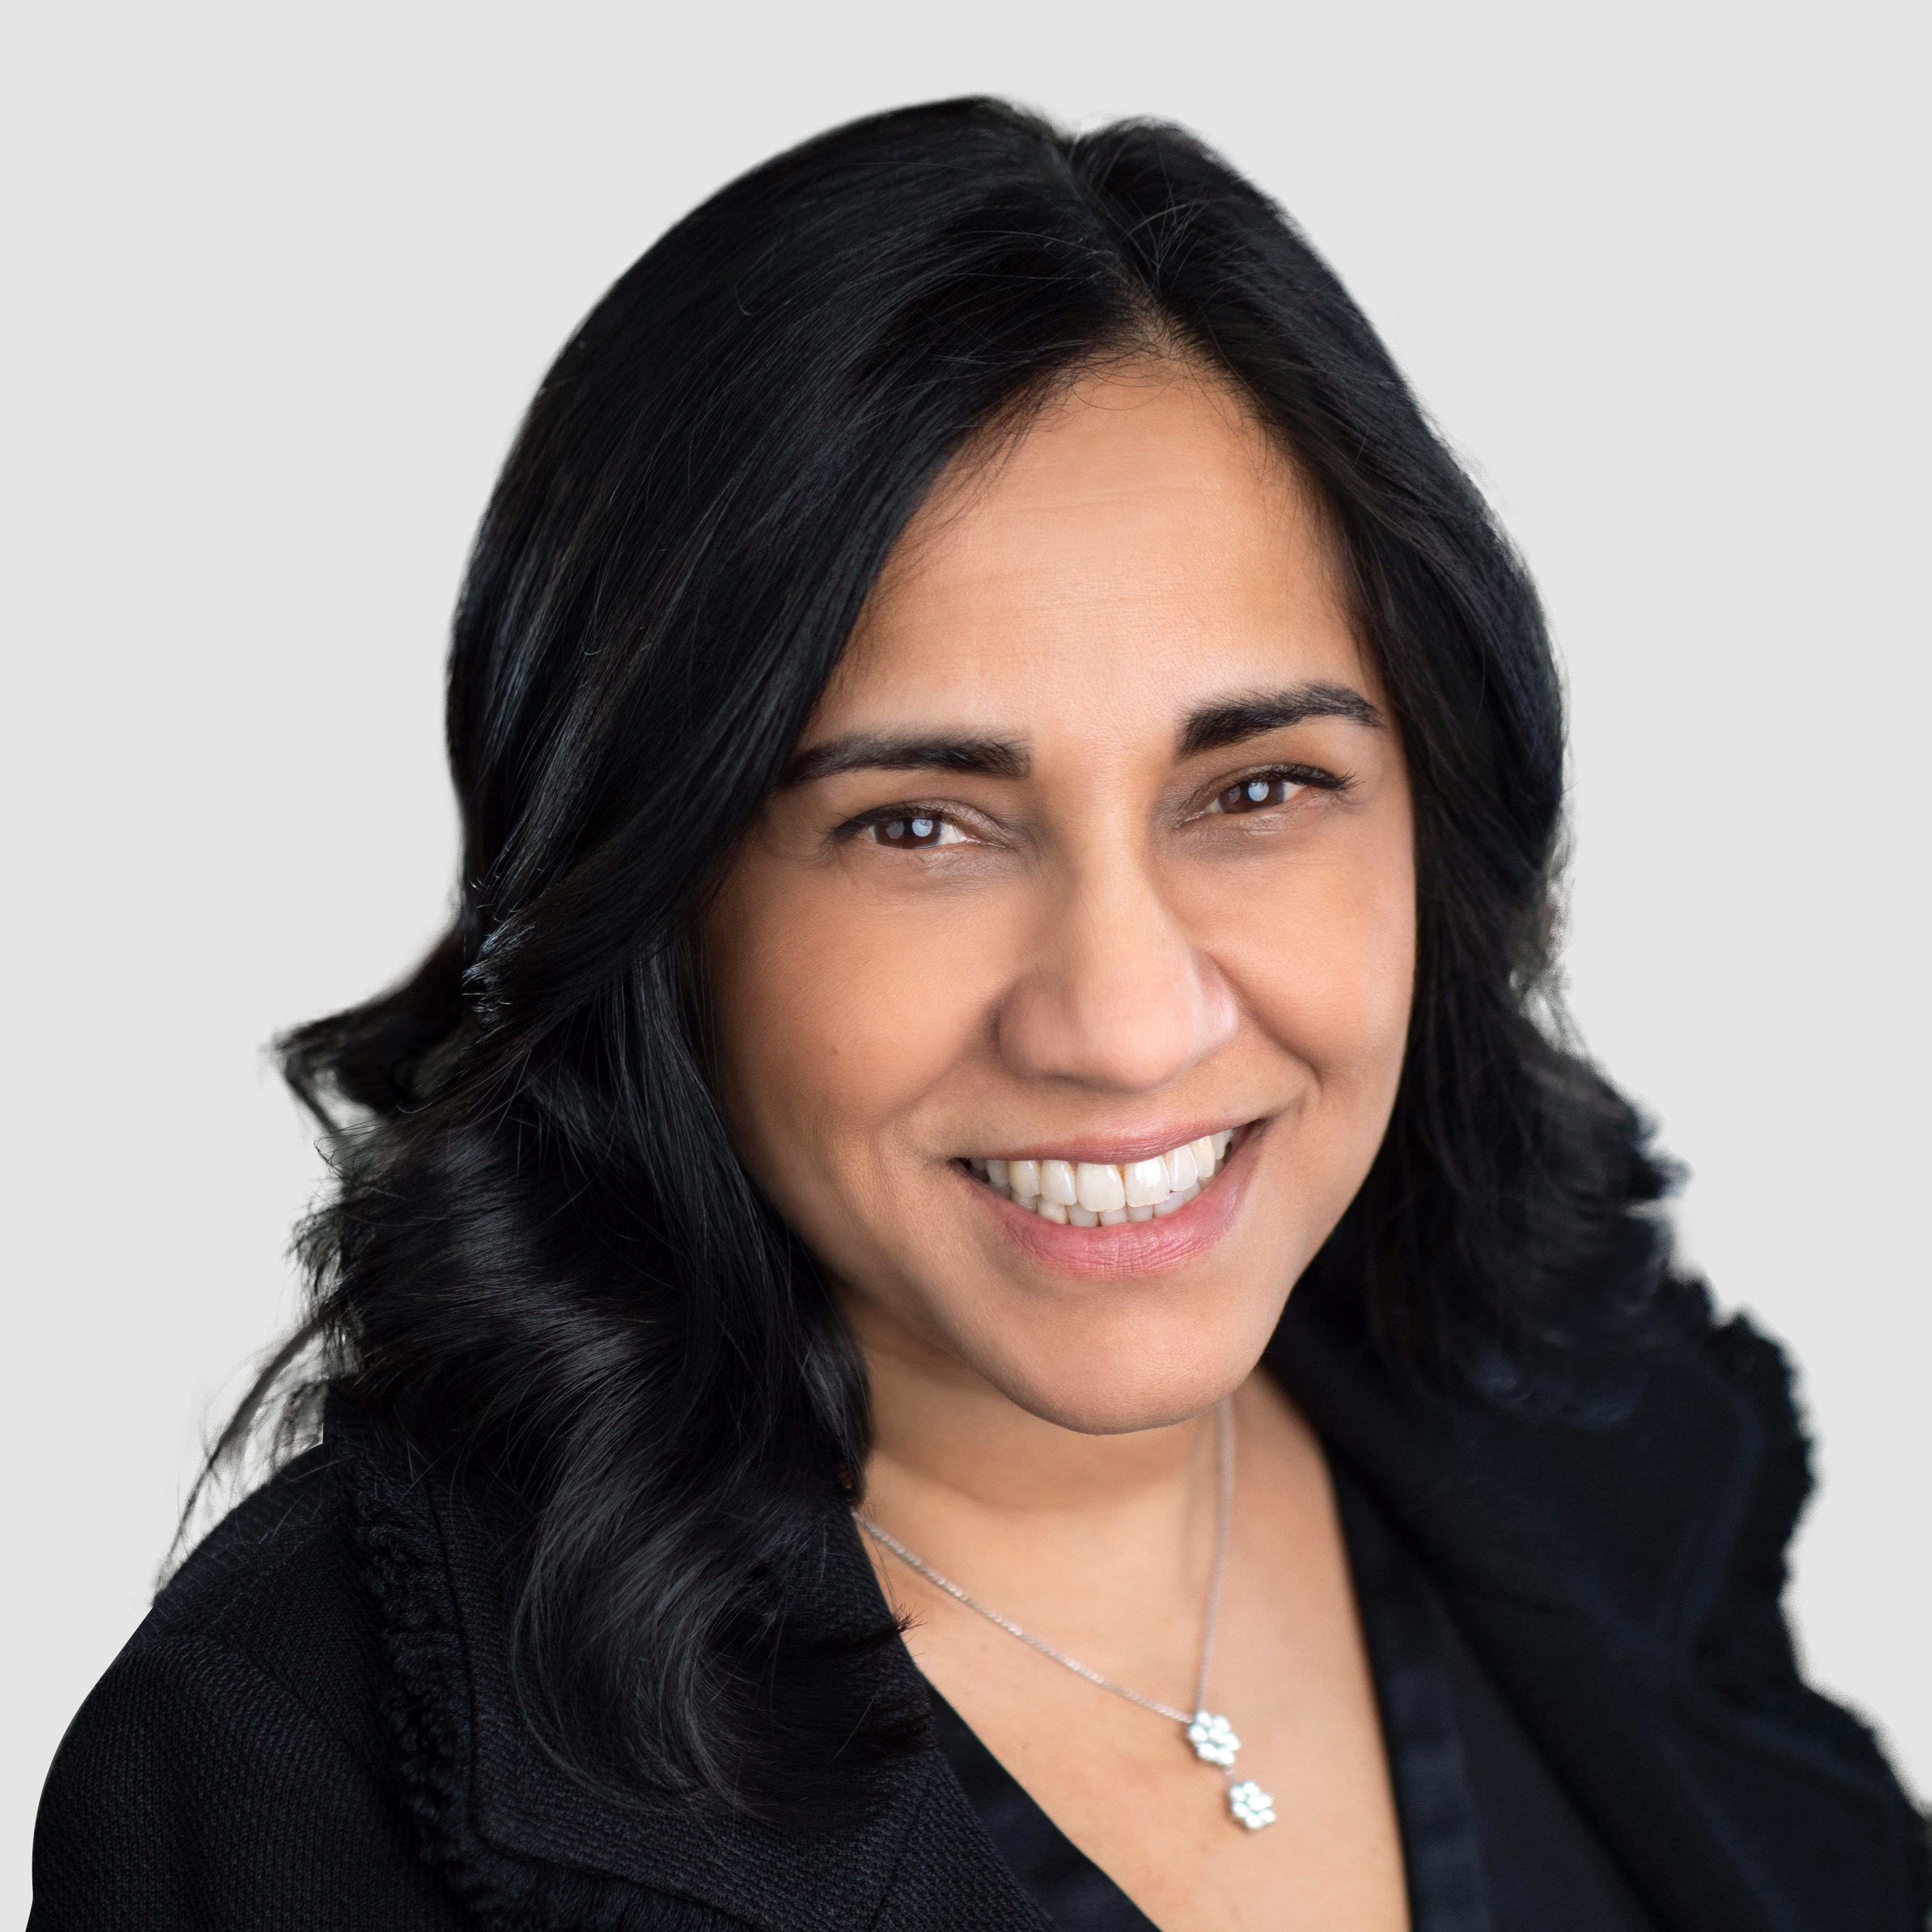 Amy Summy, Labcorp Chief Marketing Officer